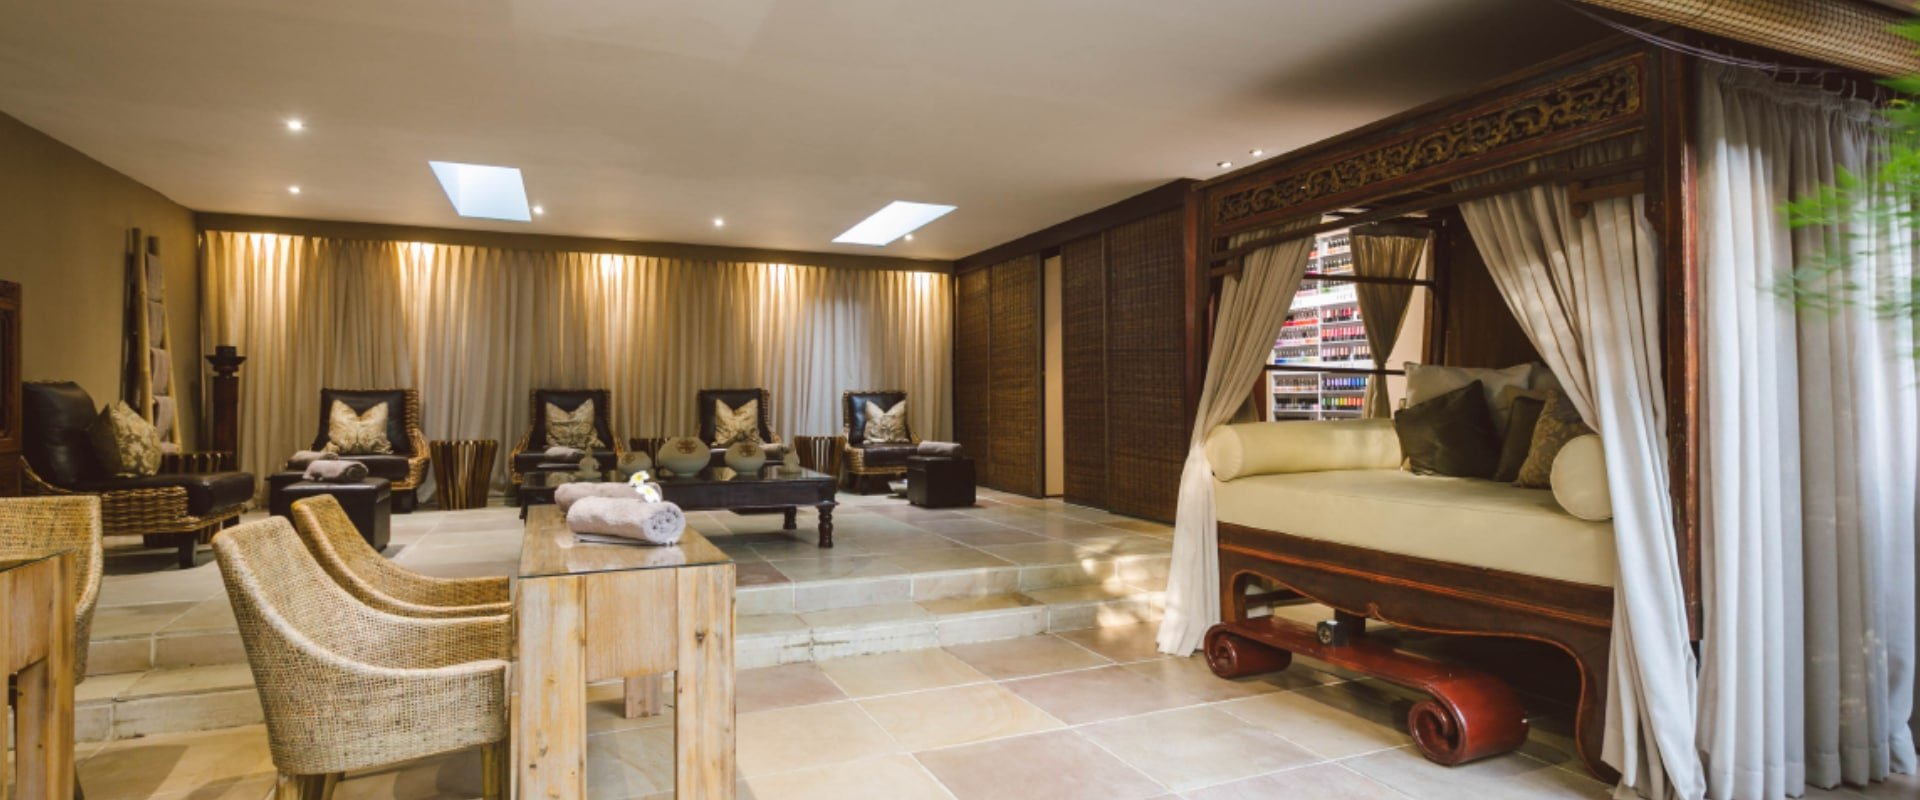 Relax and rejuvenate at the Spa